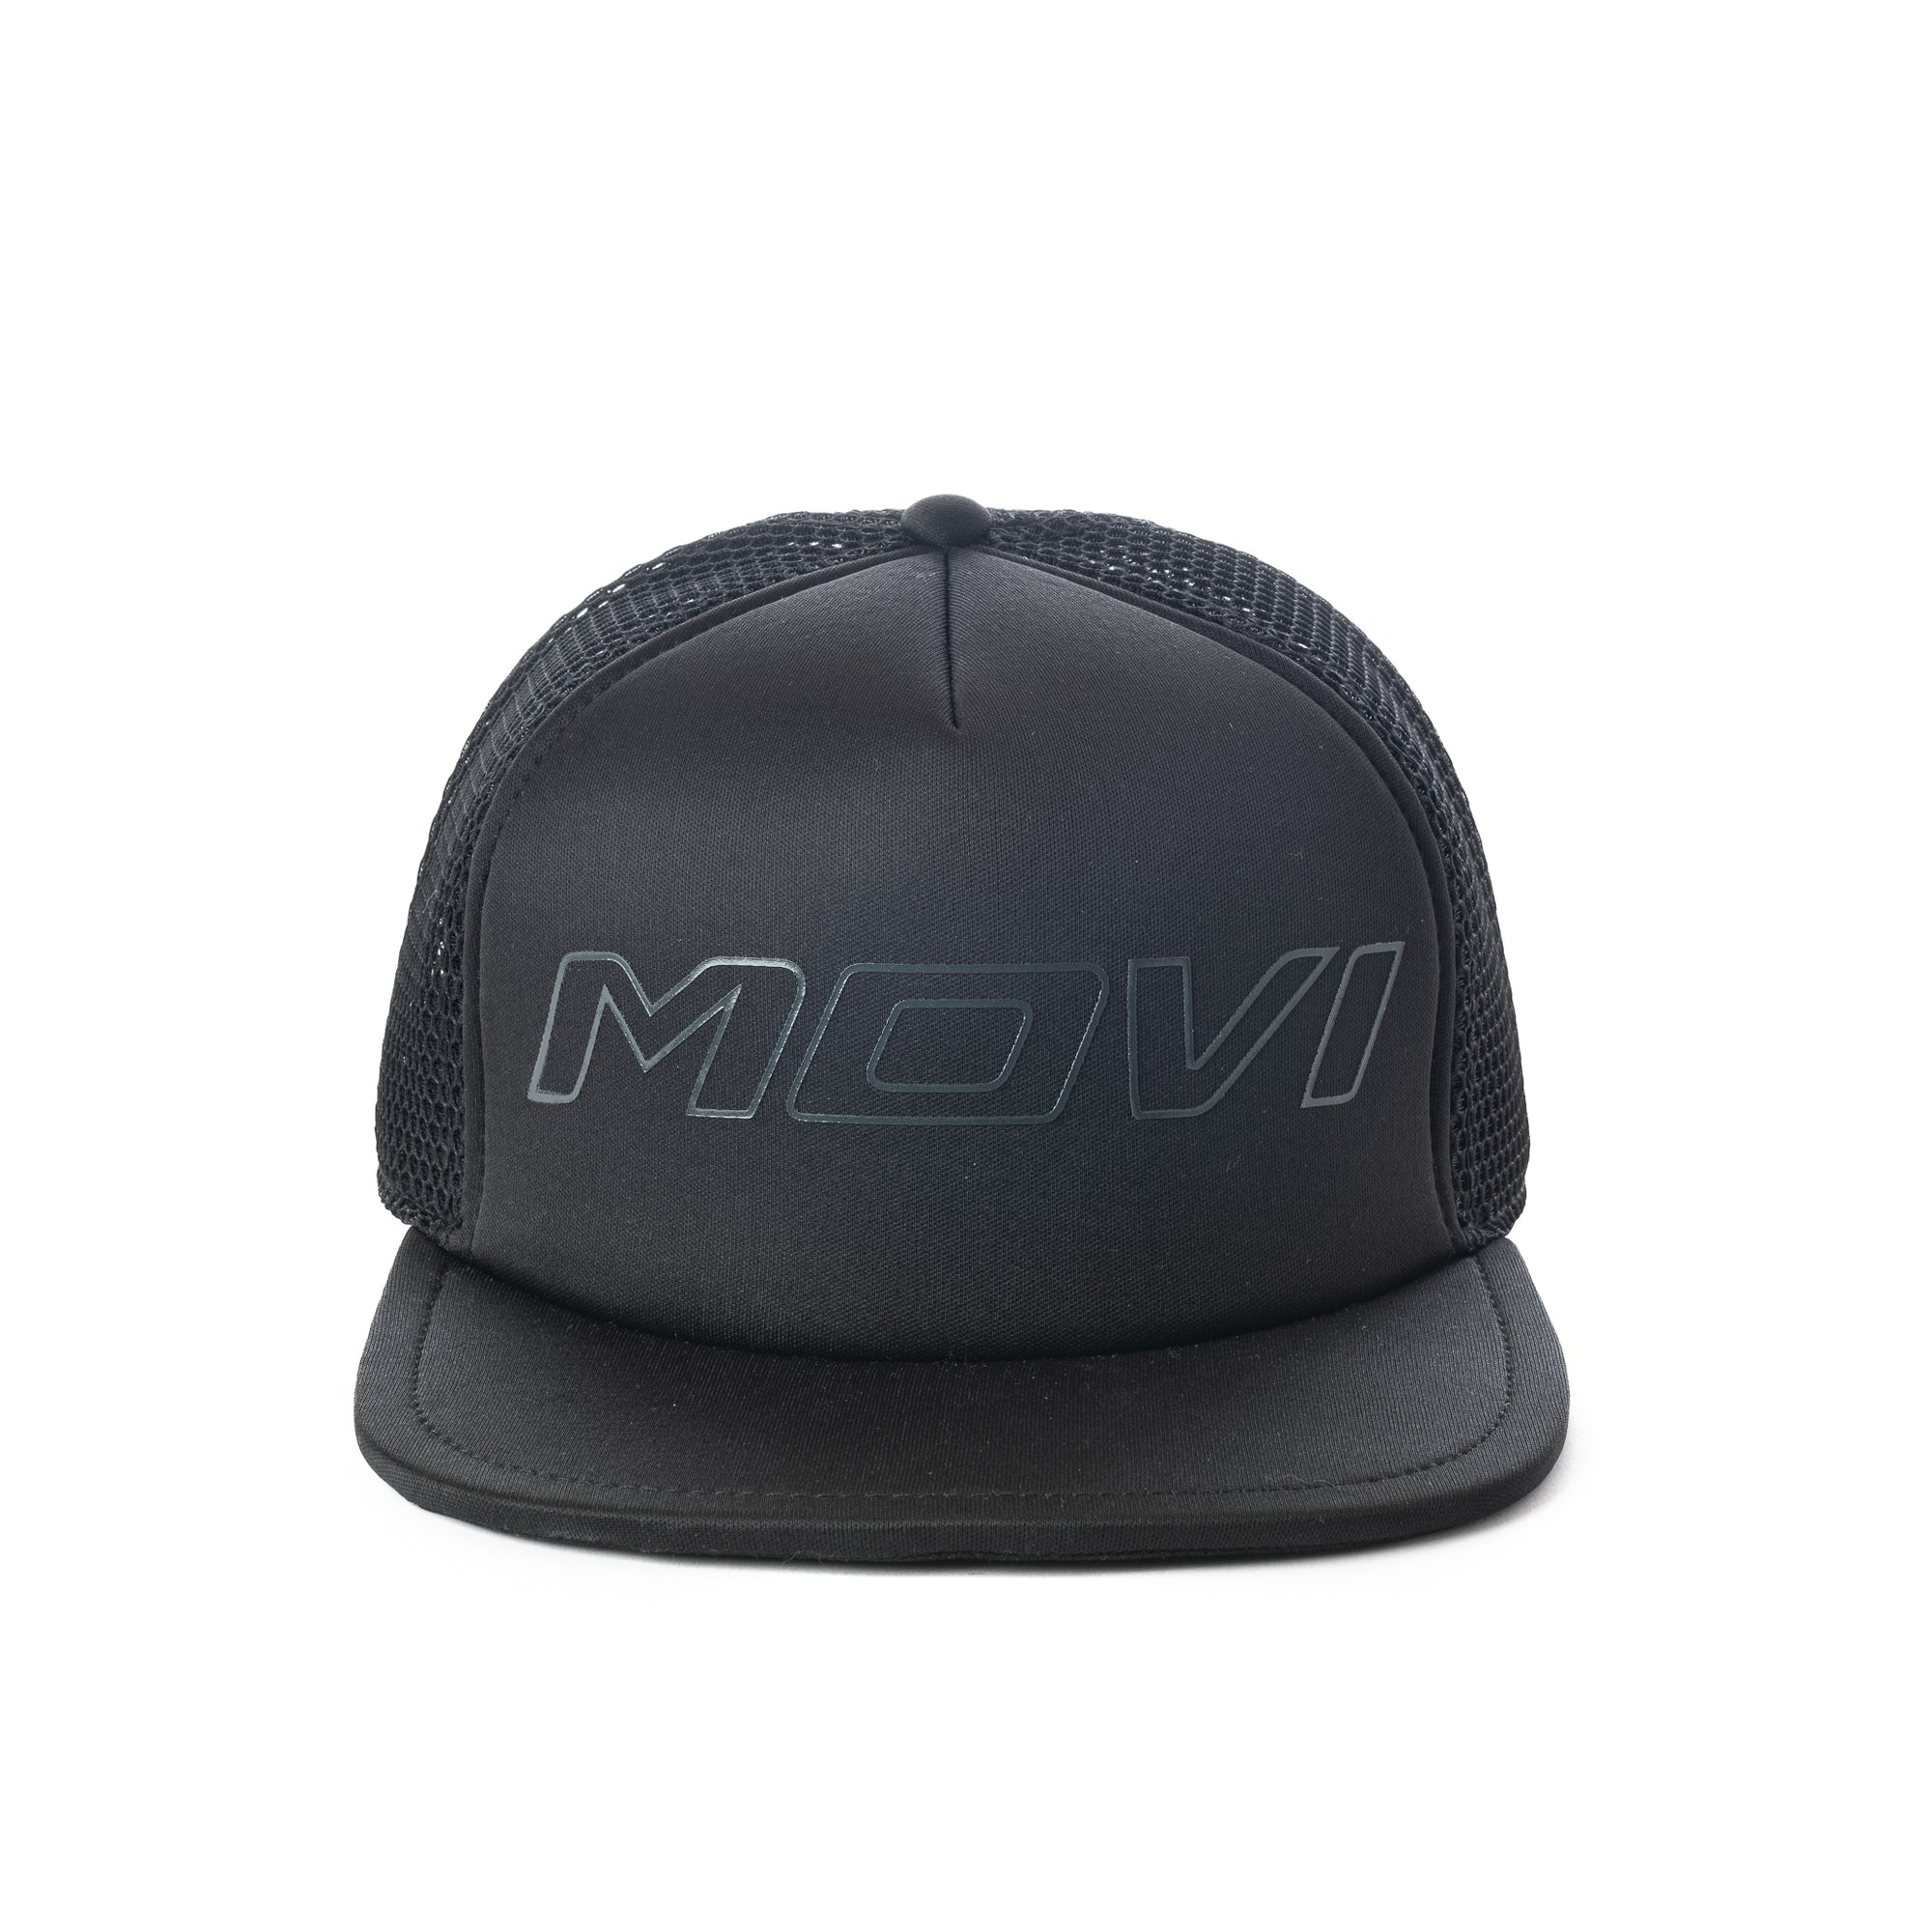 MOVI Classic Trucker - Black on Black on Black